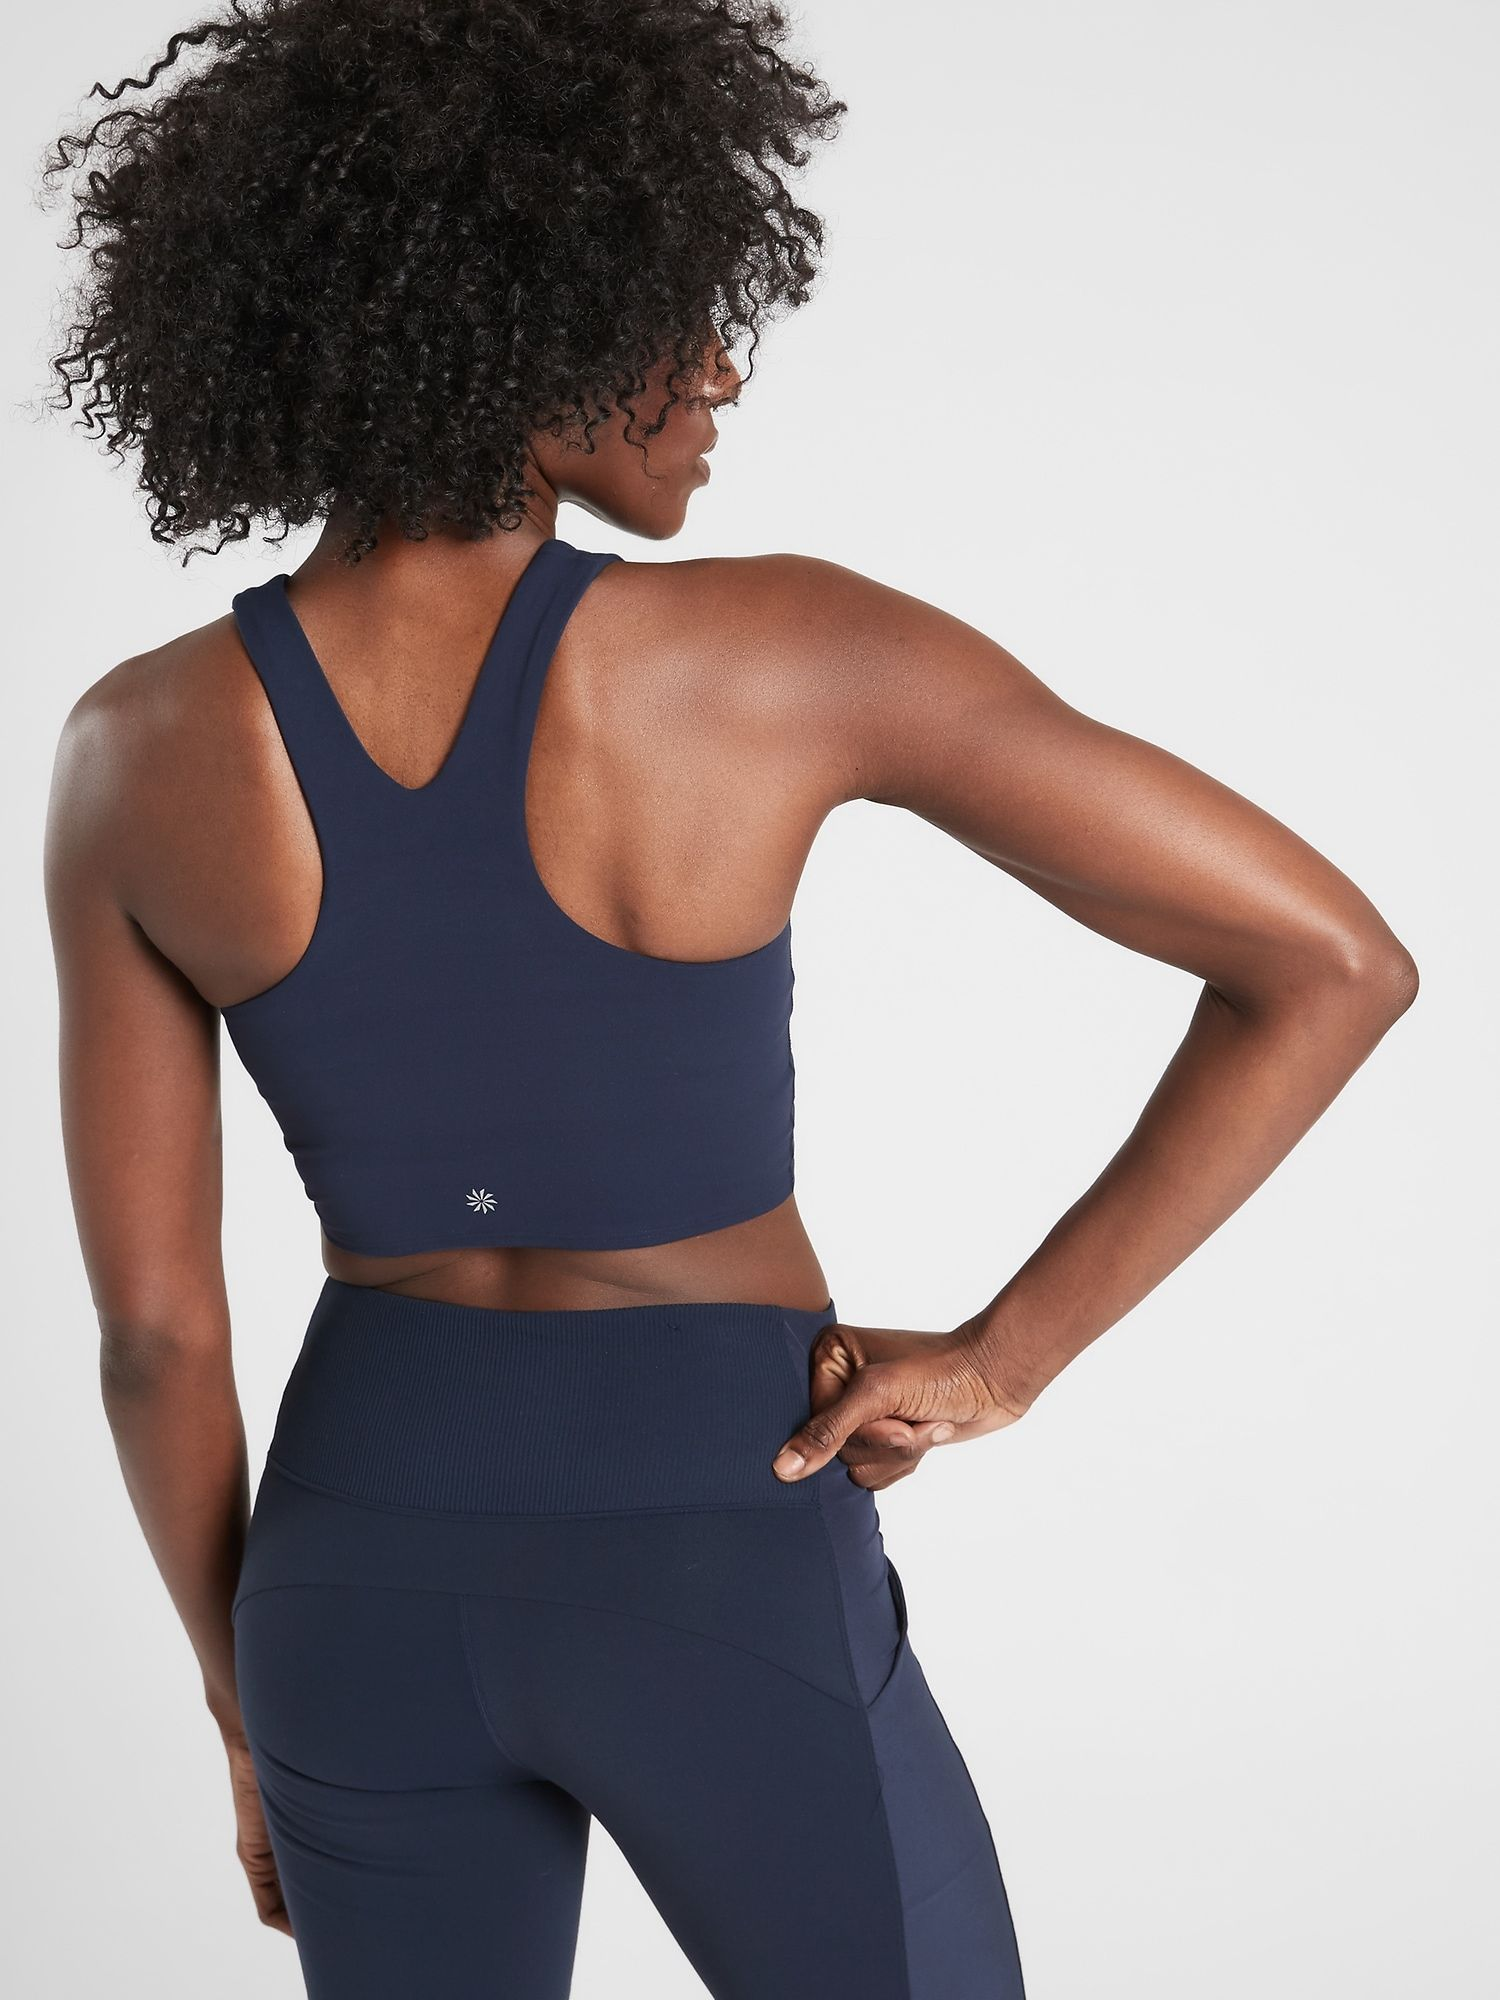 Conscious Crop in Powervita AC Low impact workout, Yoga